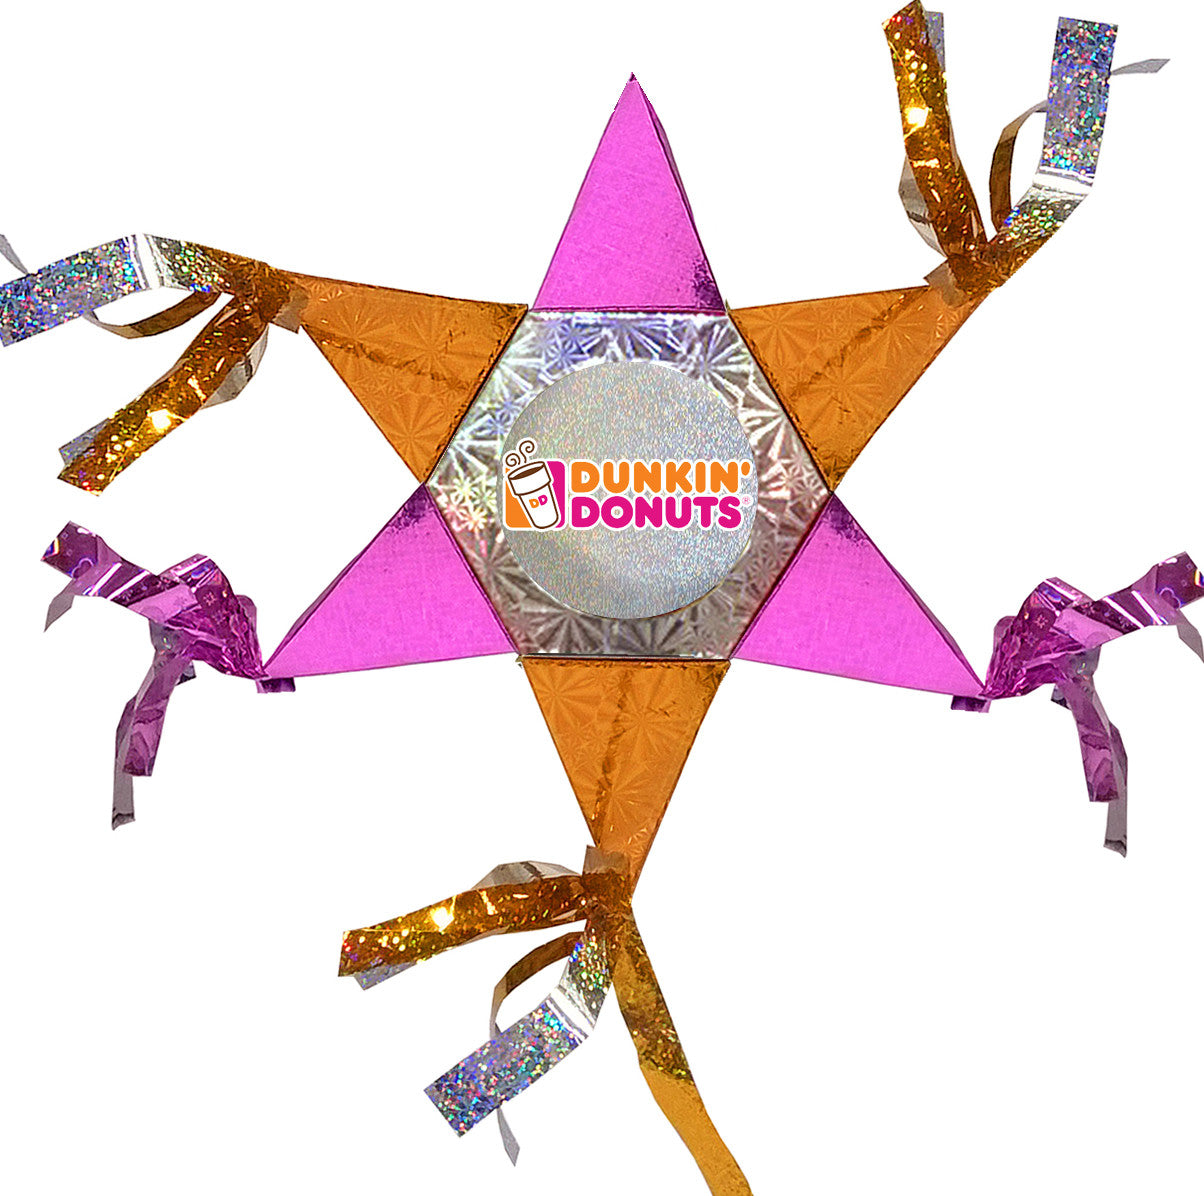 Dunkin Donuts Mini Star Promotional Pinata